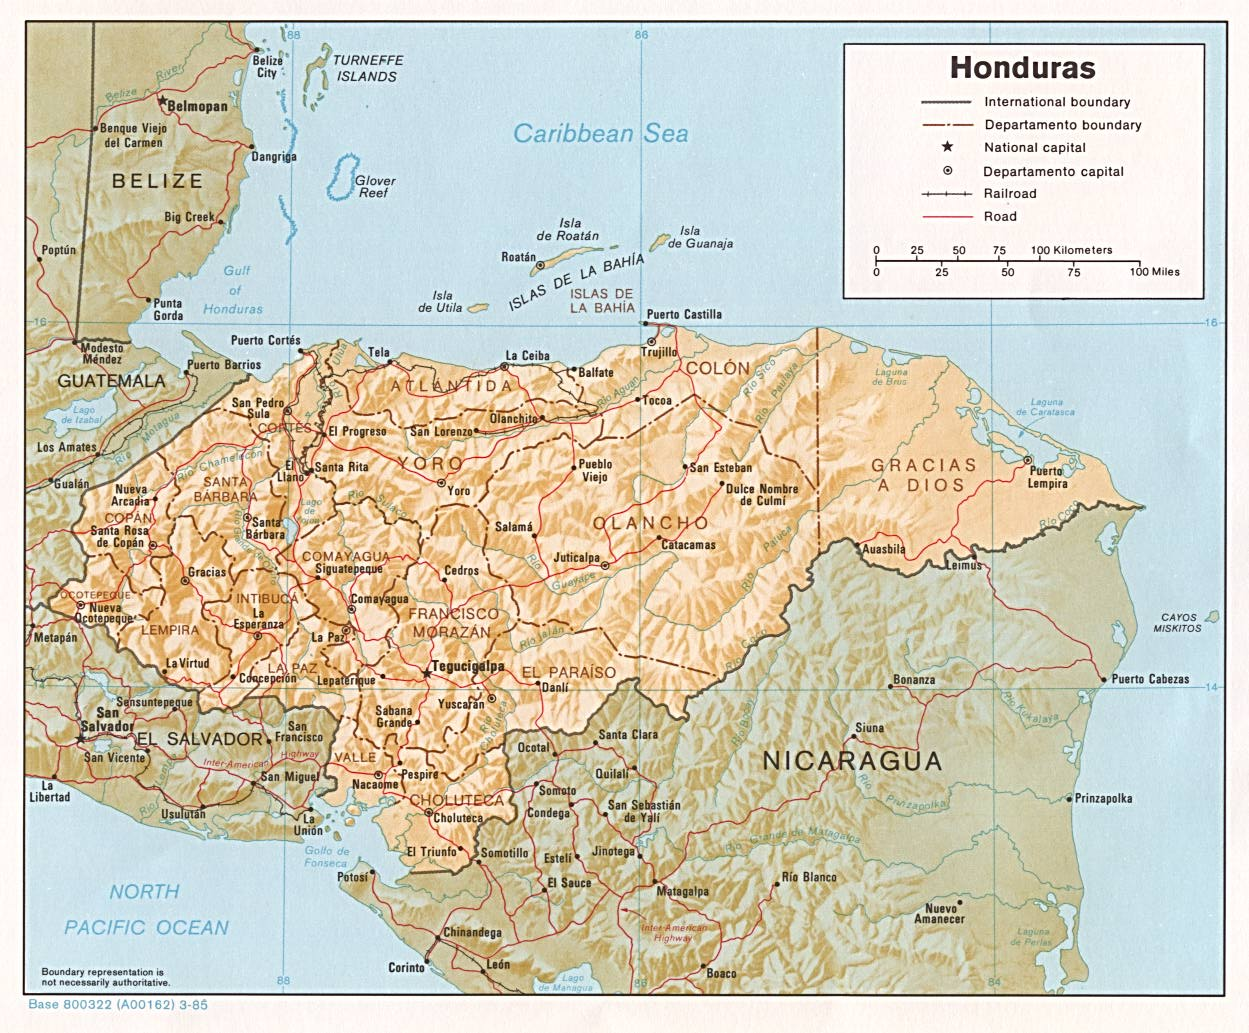 Honduras Shaded Relief Map